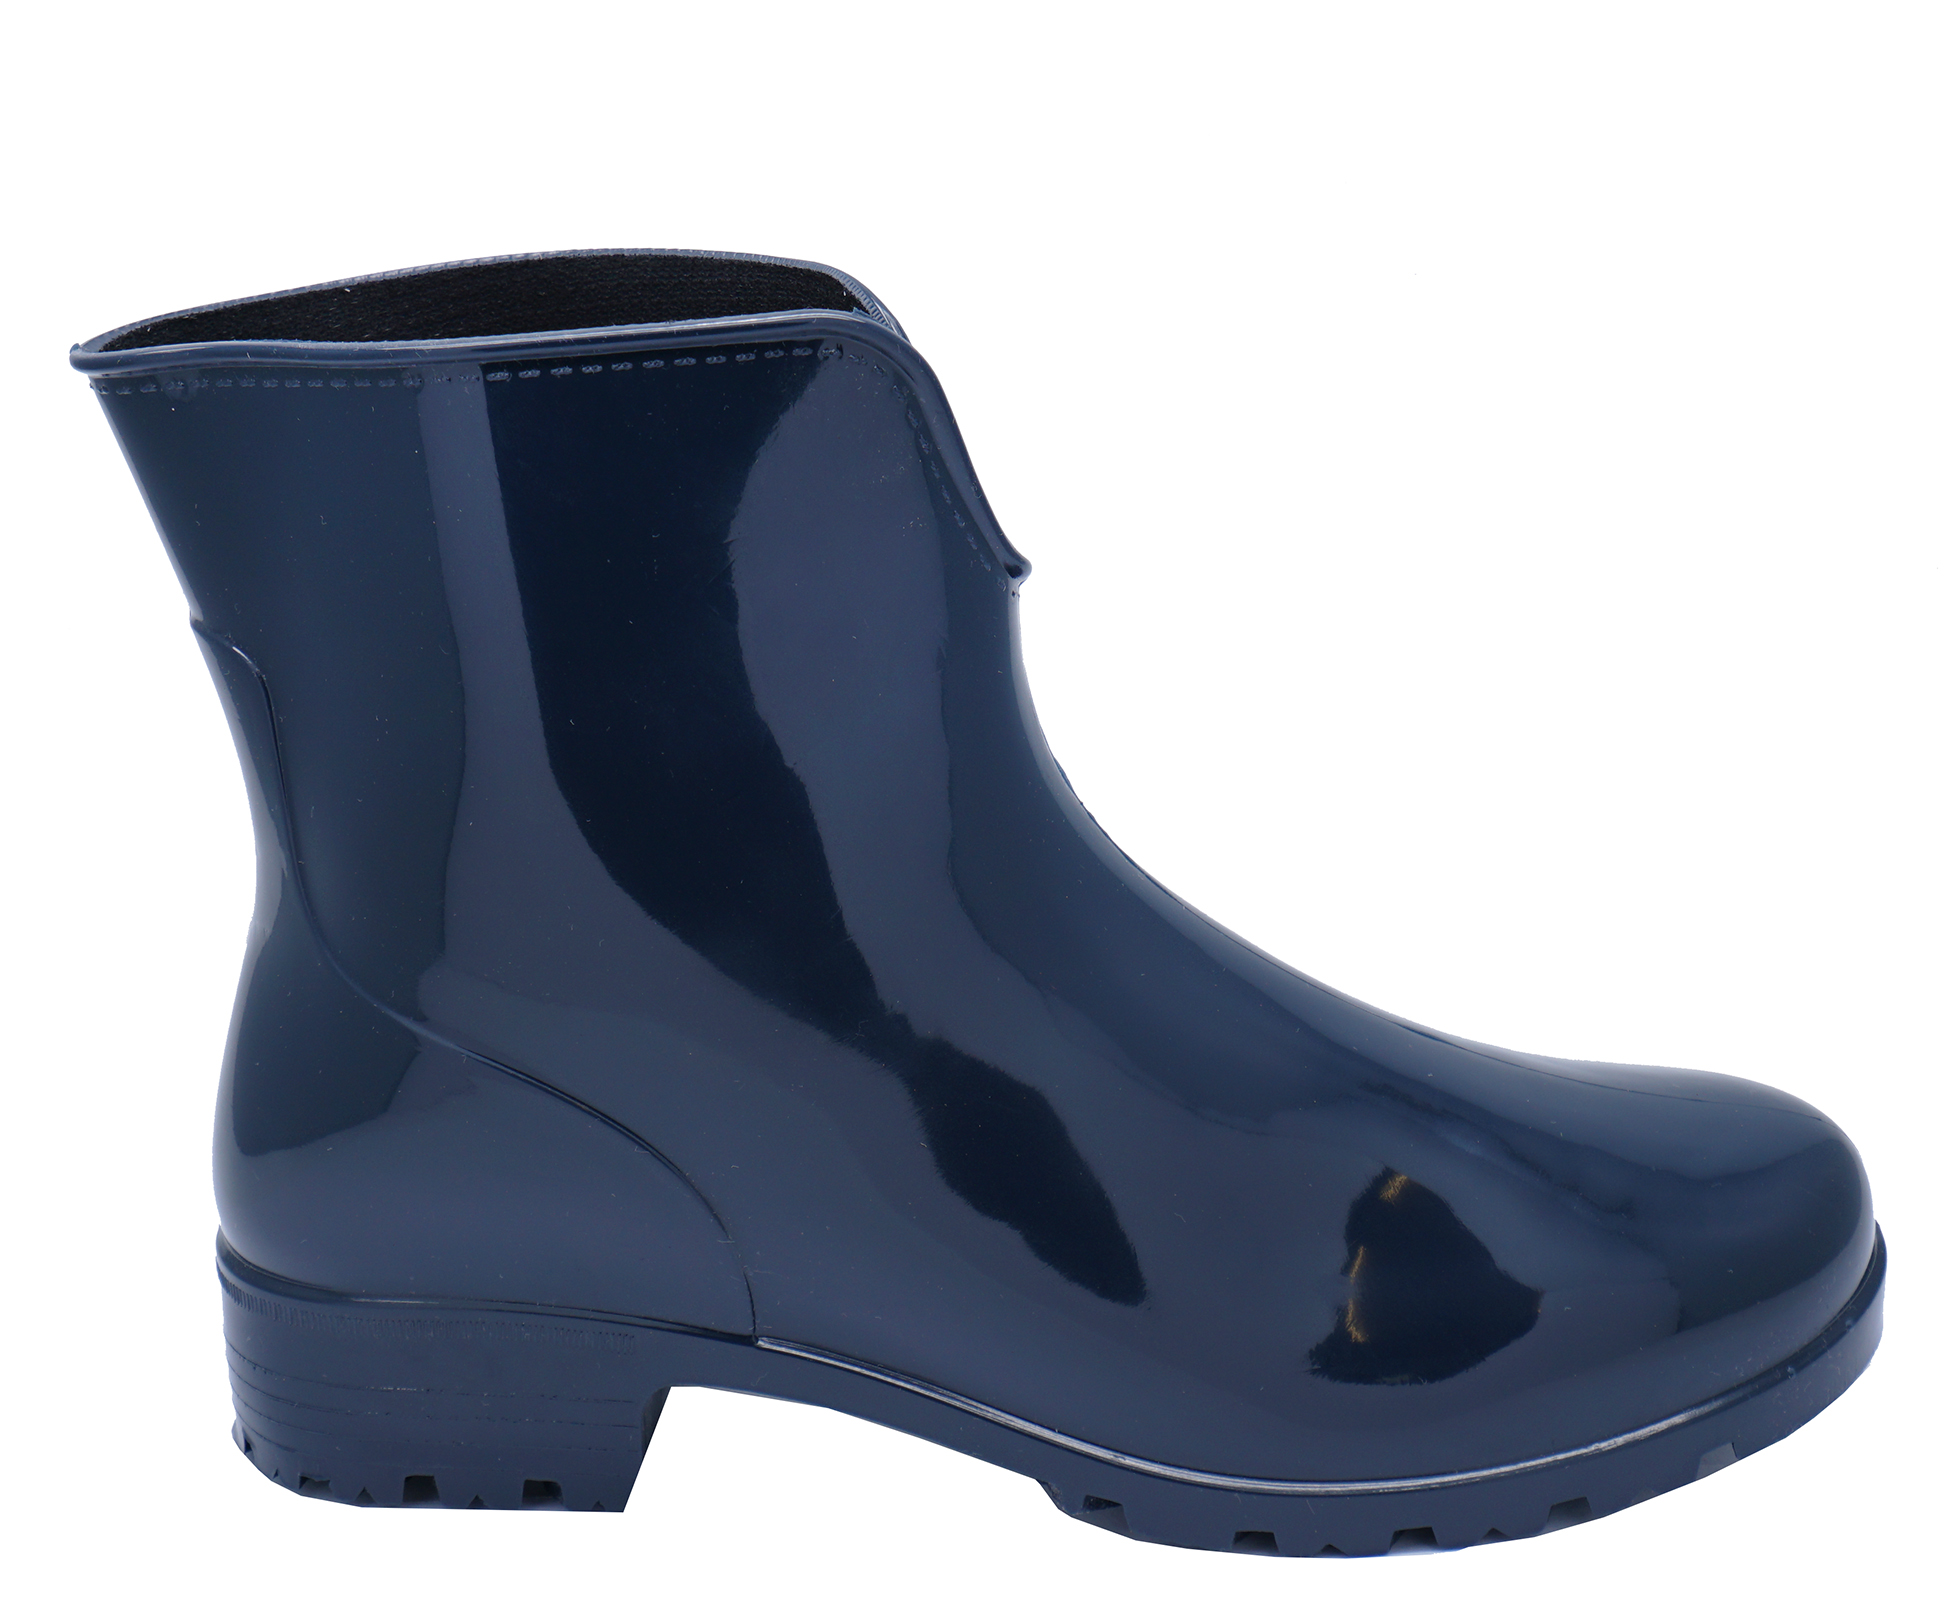 thumbnail 6 - WOMENS-NAVY-ANKLE-GARDEN-WELLIES-WELLINGTON-WALKING-RAIN-BOOTS-SHOES-SIZES-3-8